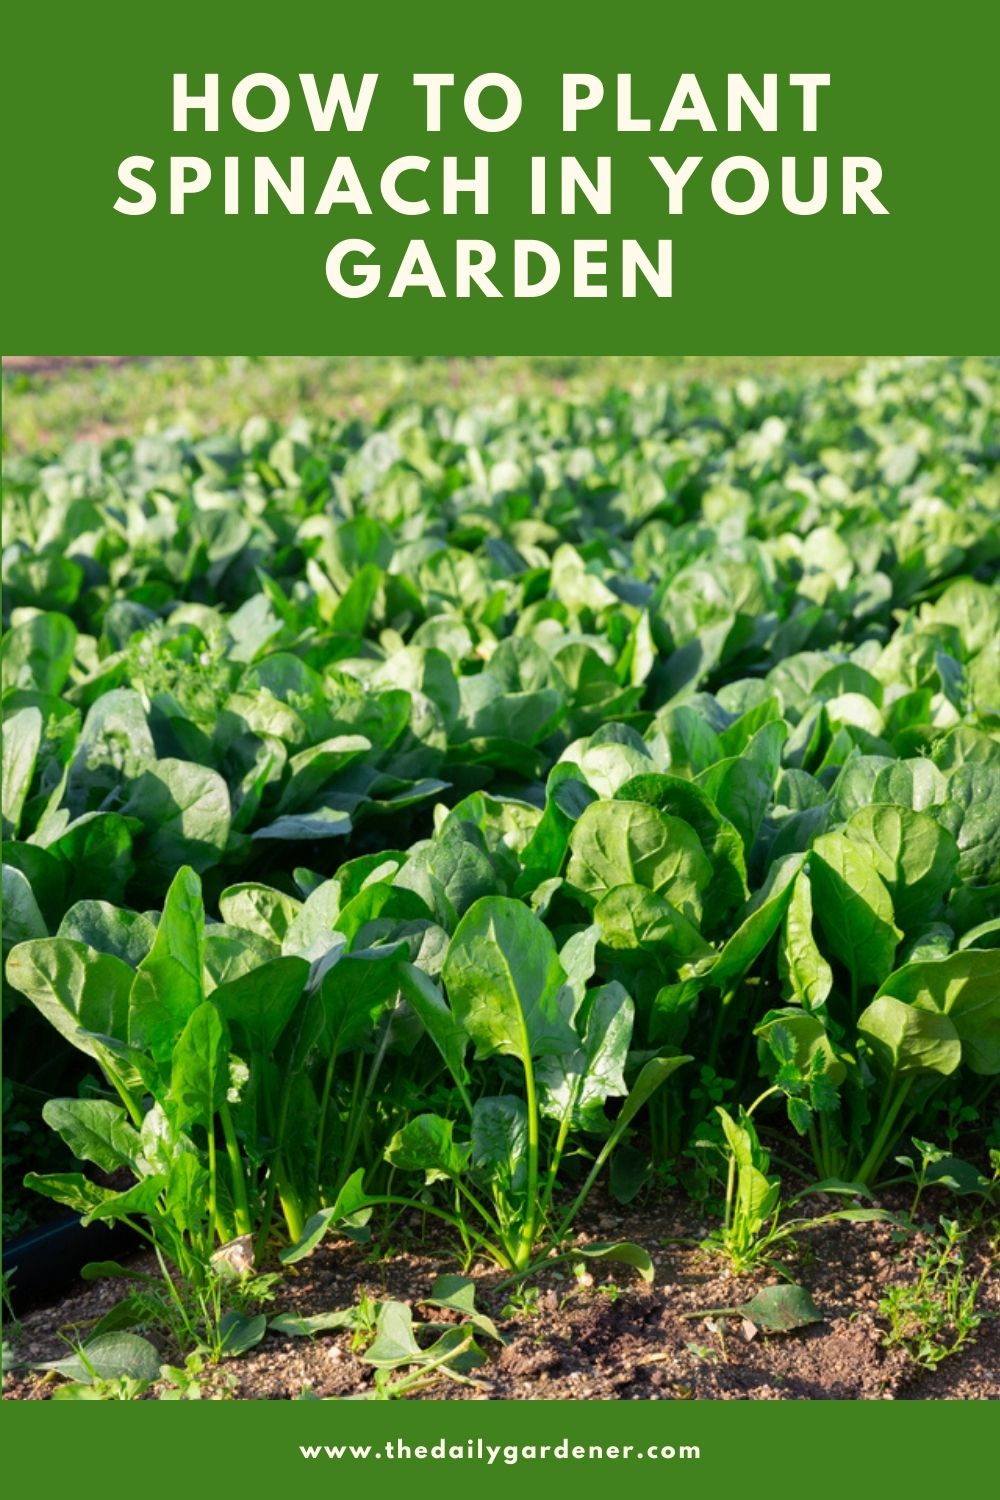 How to Plant Spinach in Your Garden (Tricks to Care!) 2